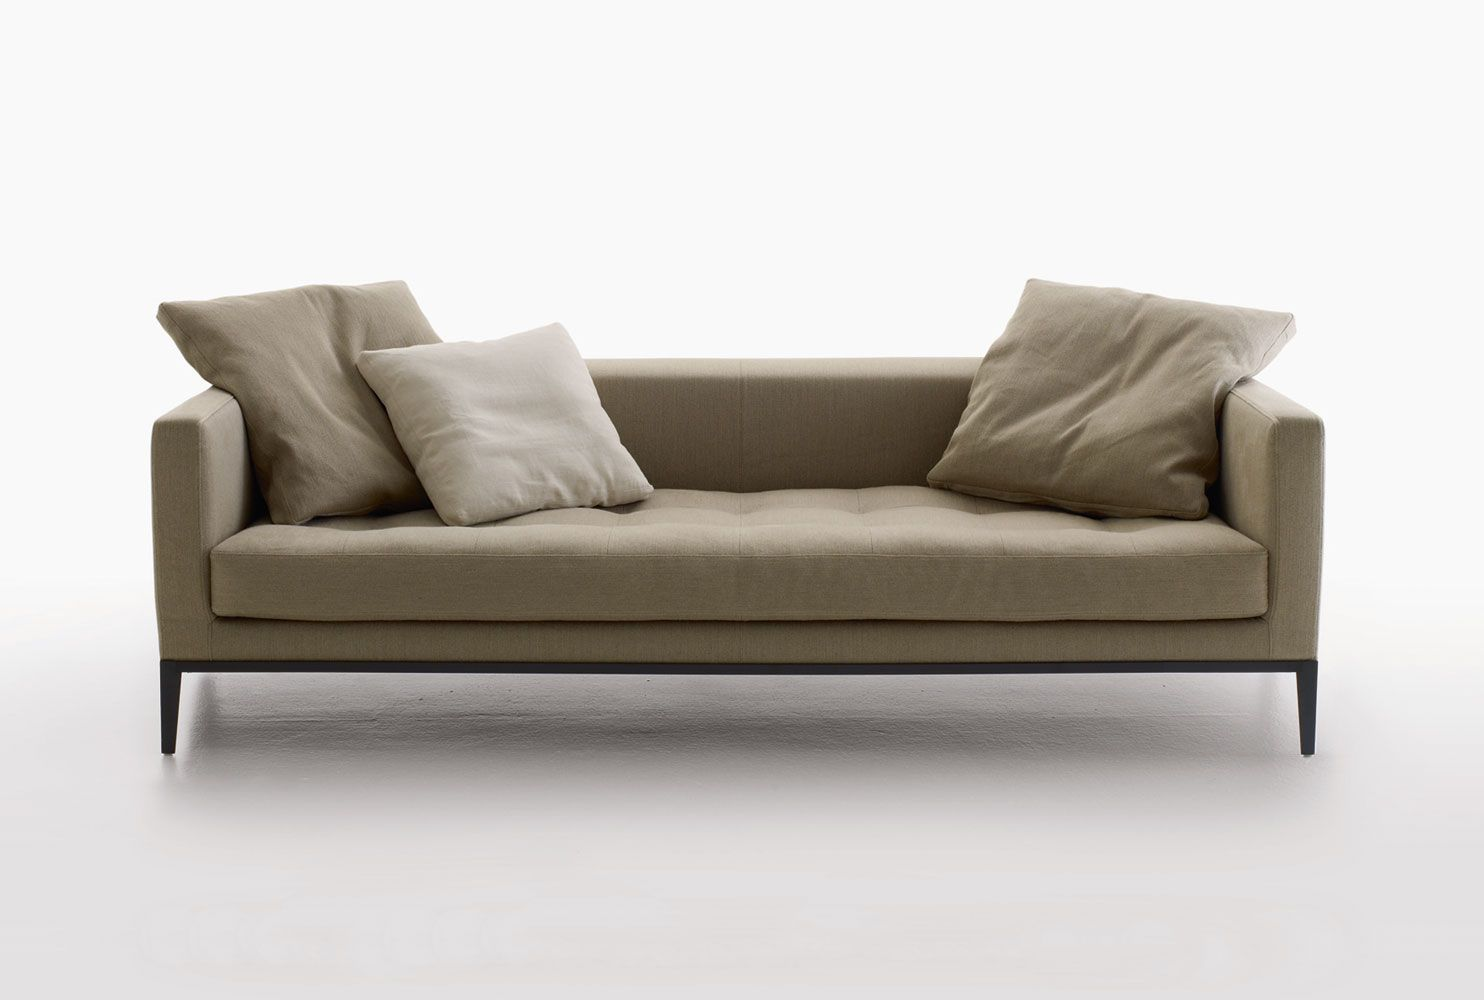 Antonio Citterio City Sofa Sofas Simpliciter Collection Maxalto Design Antonio